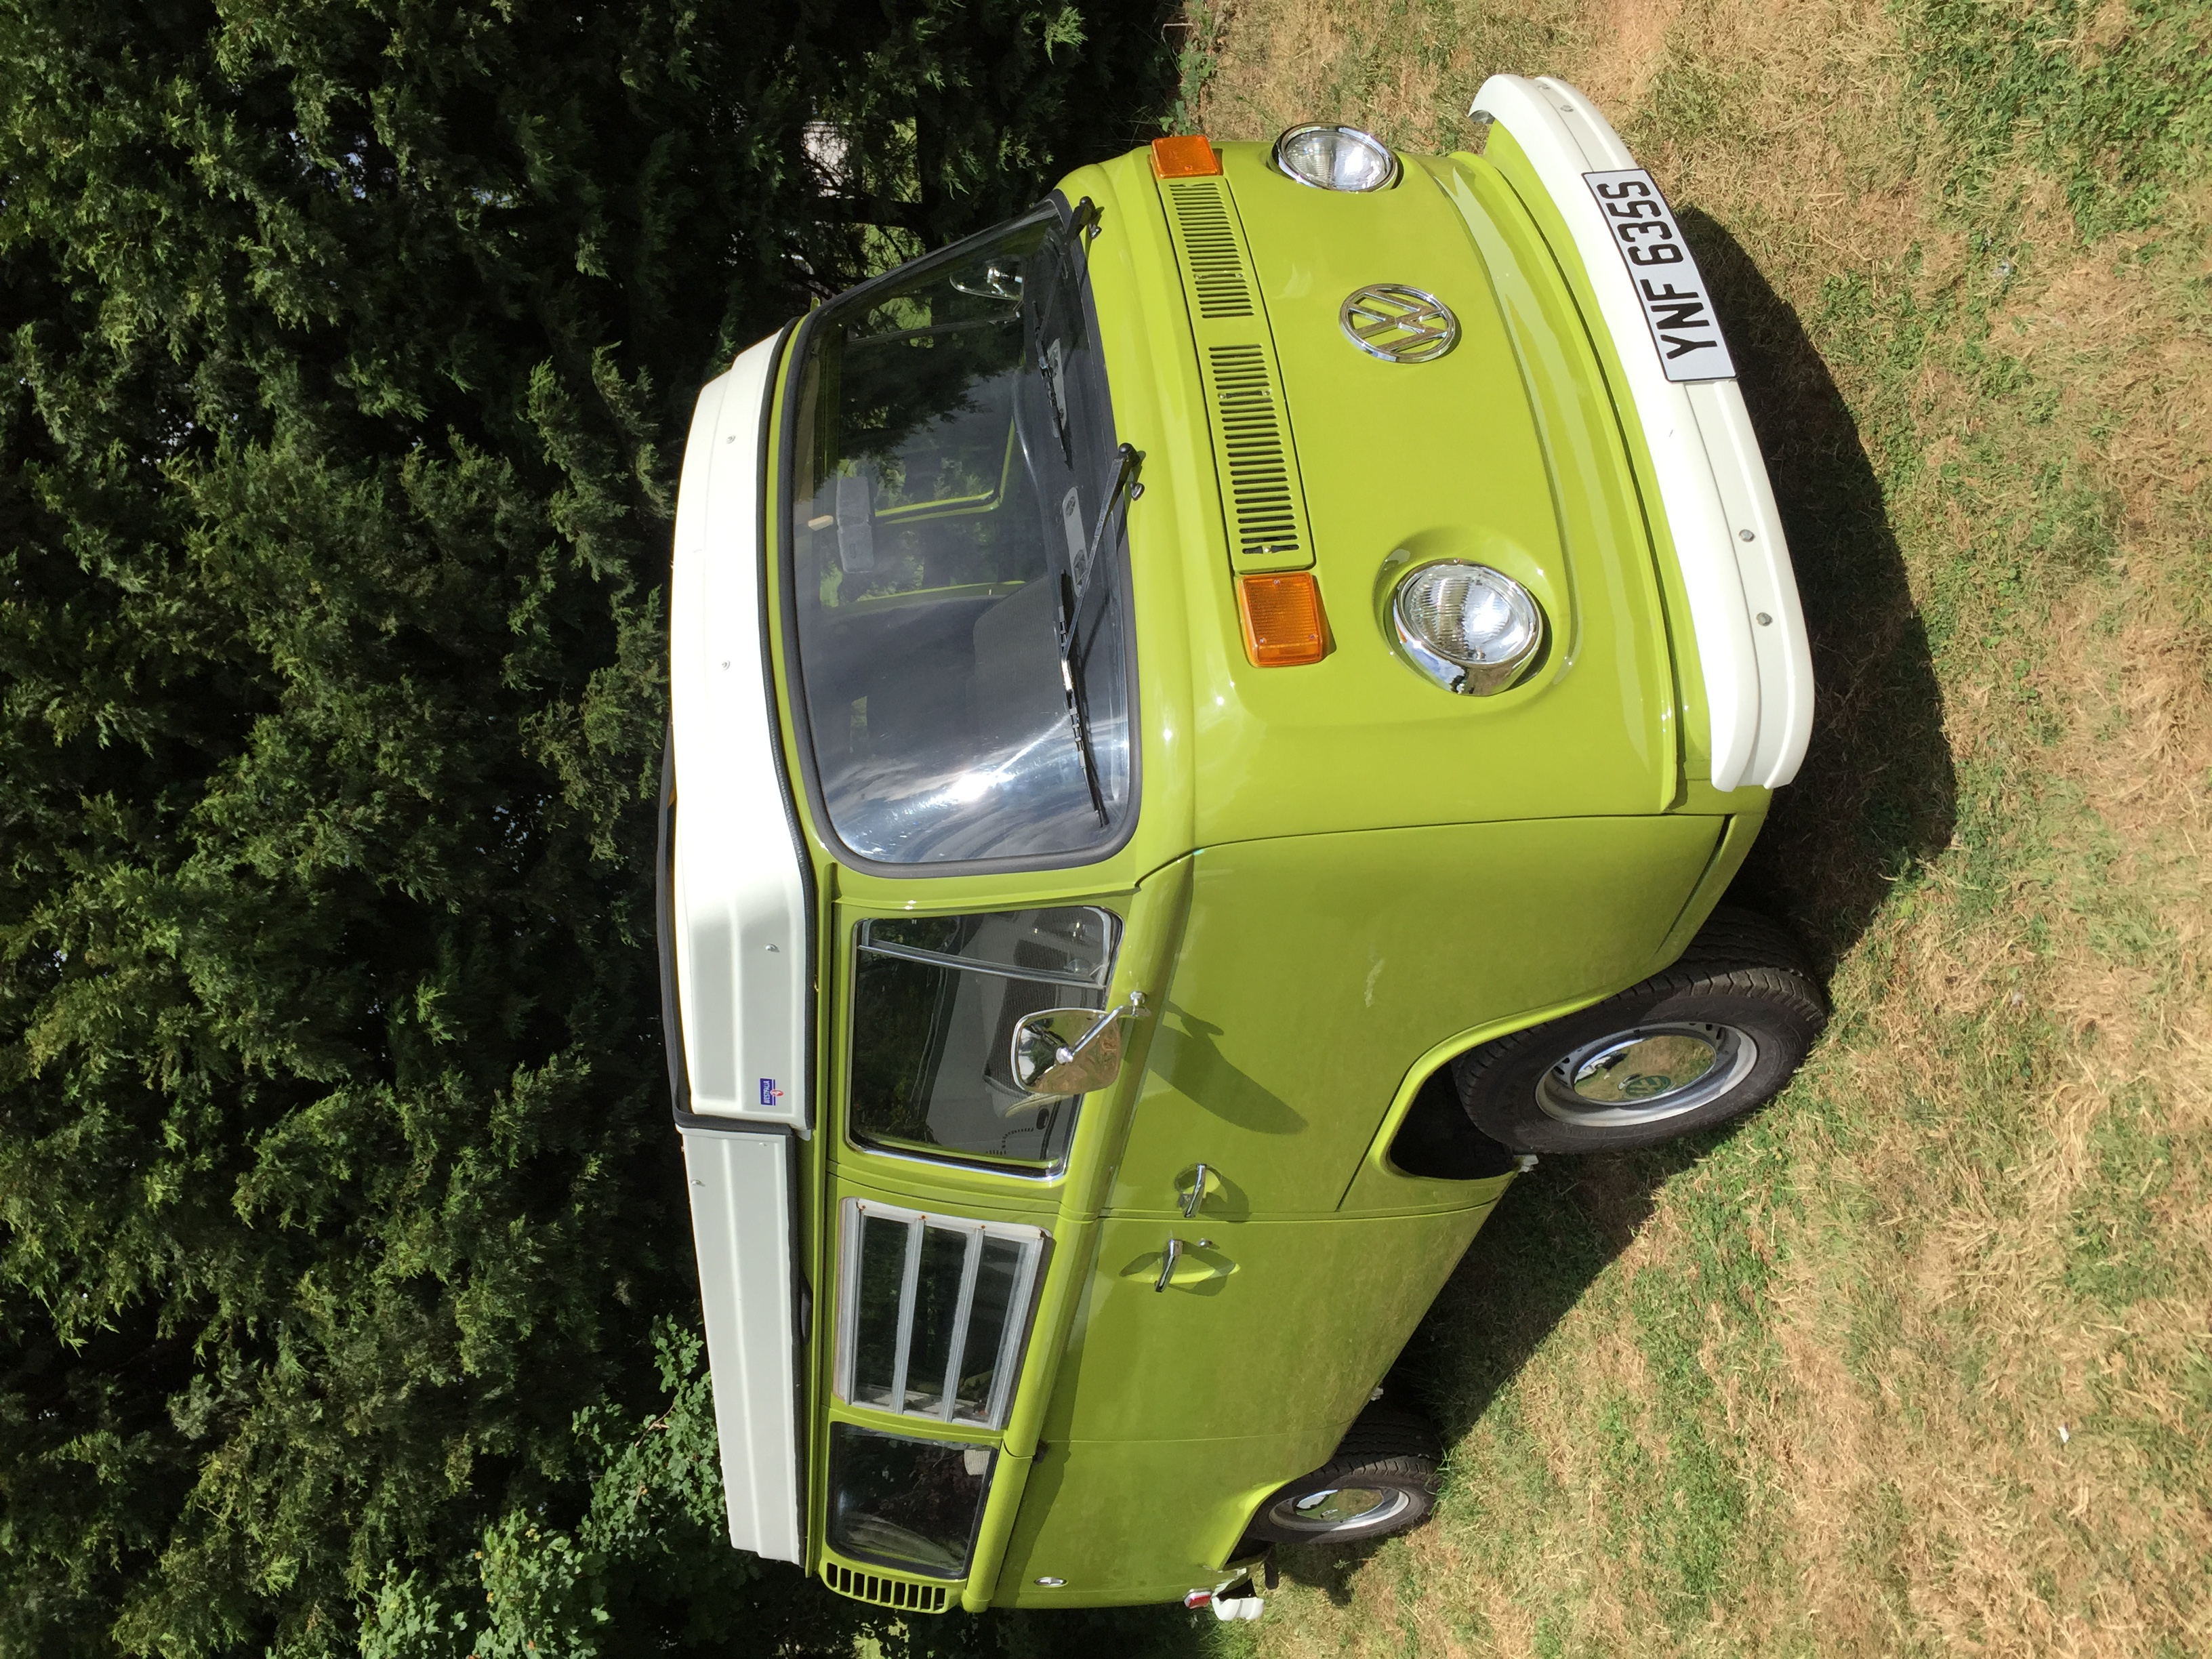 VW Westfalia Camper Van US Import